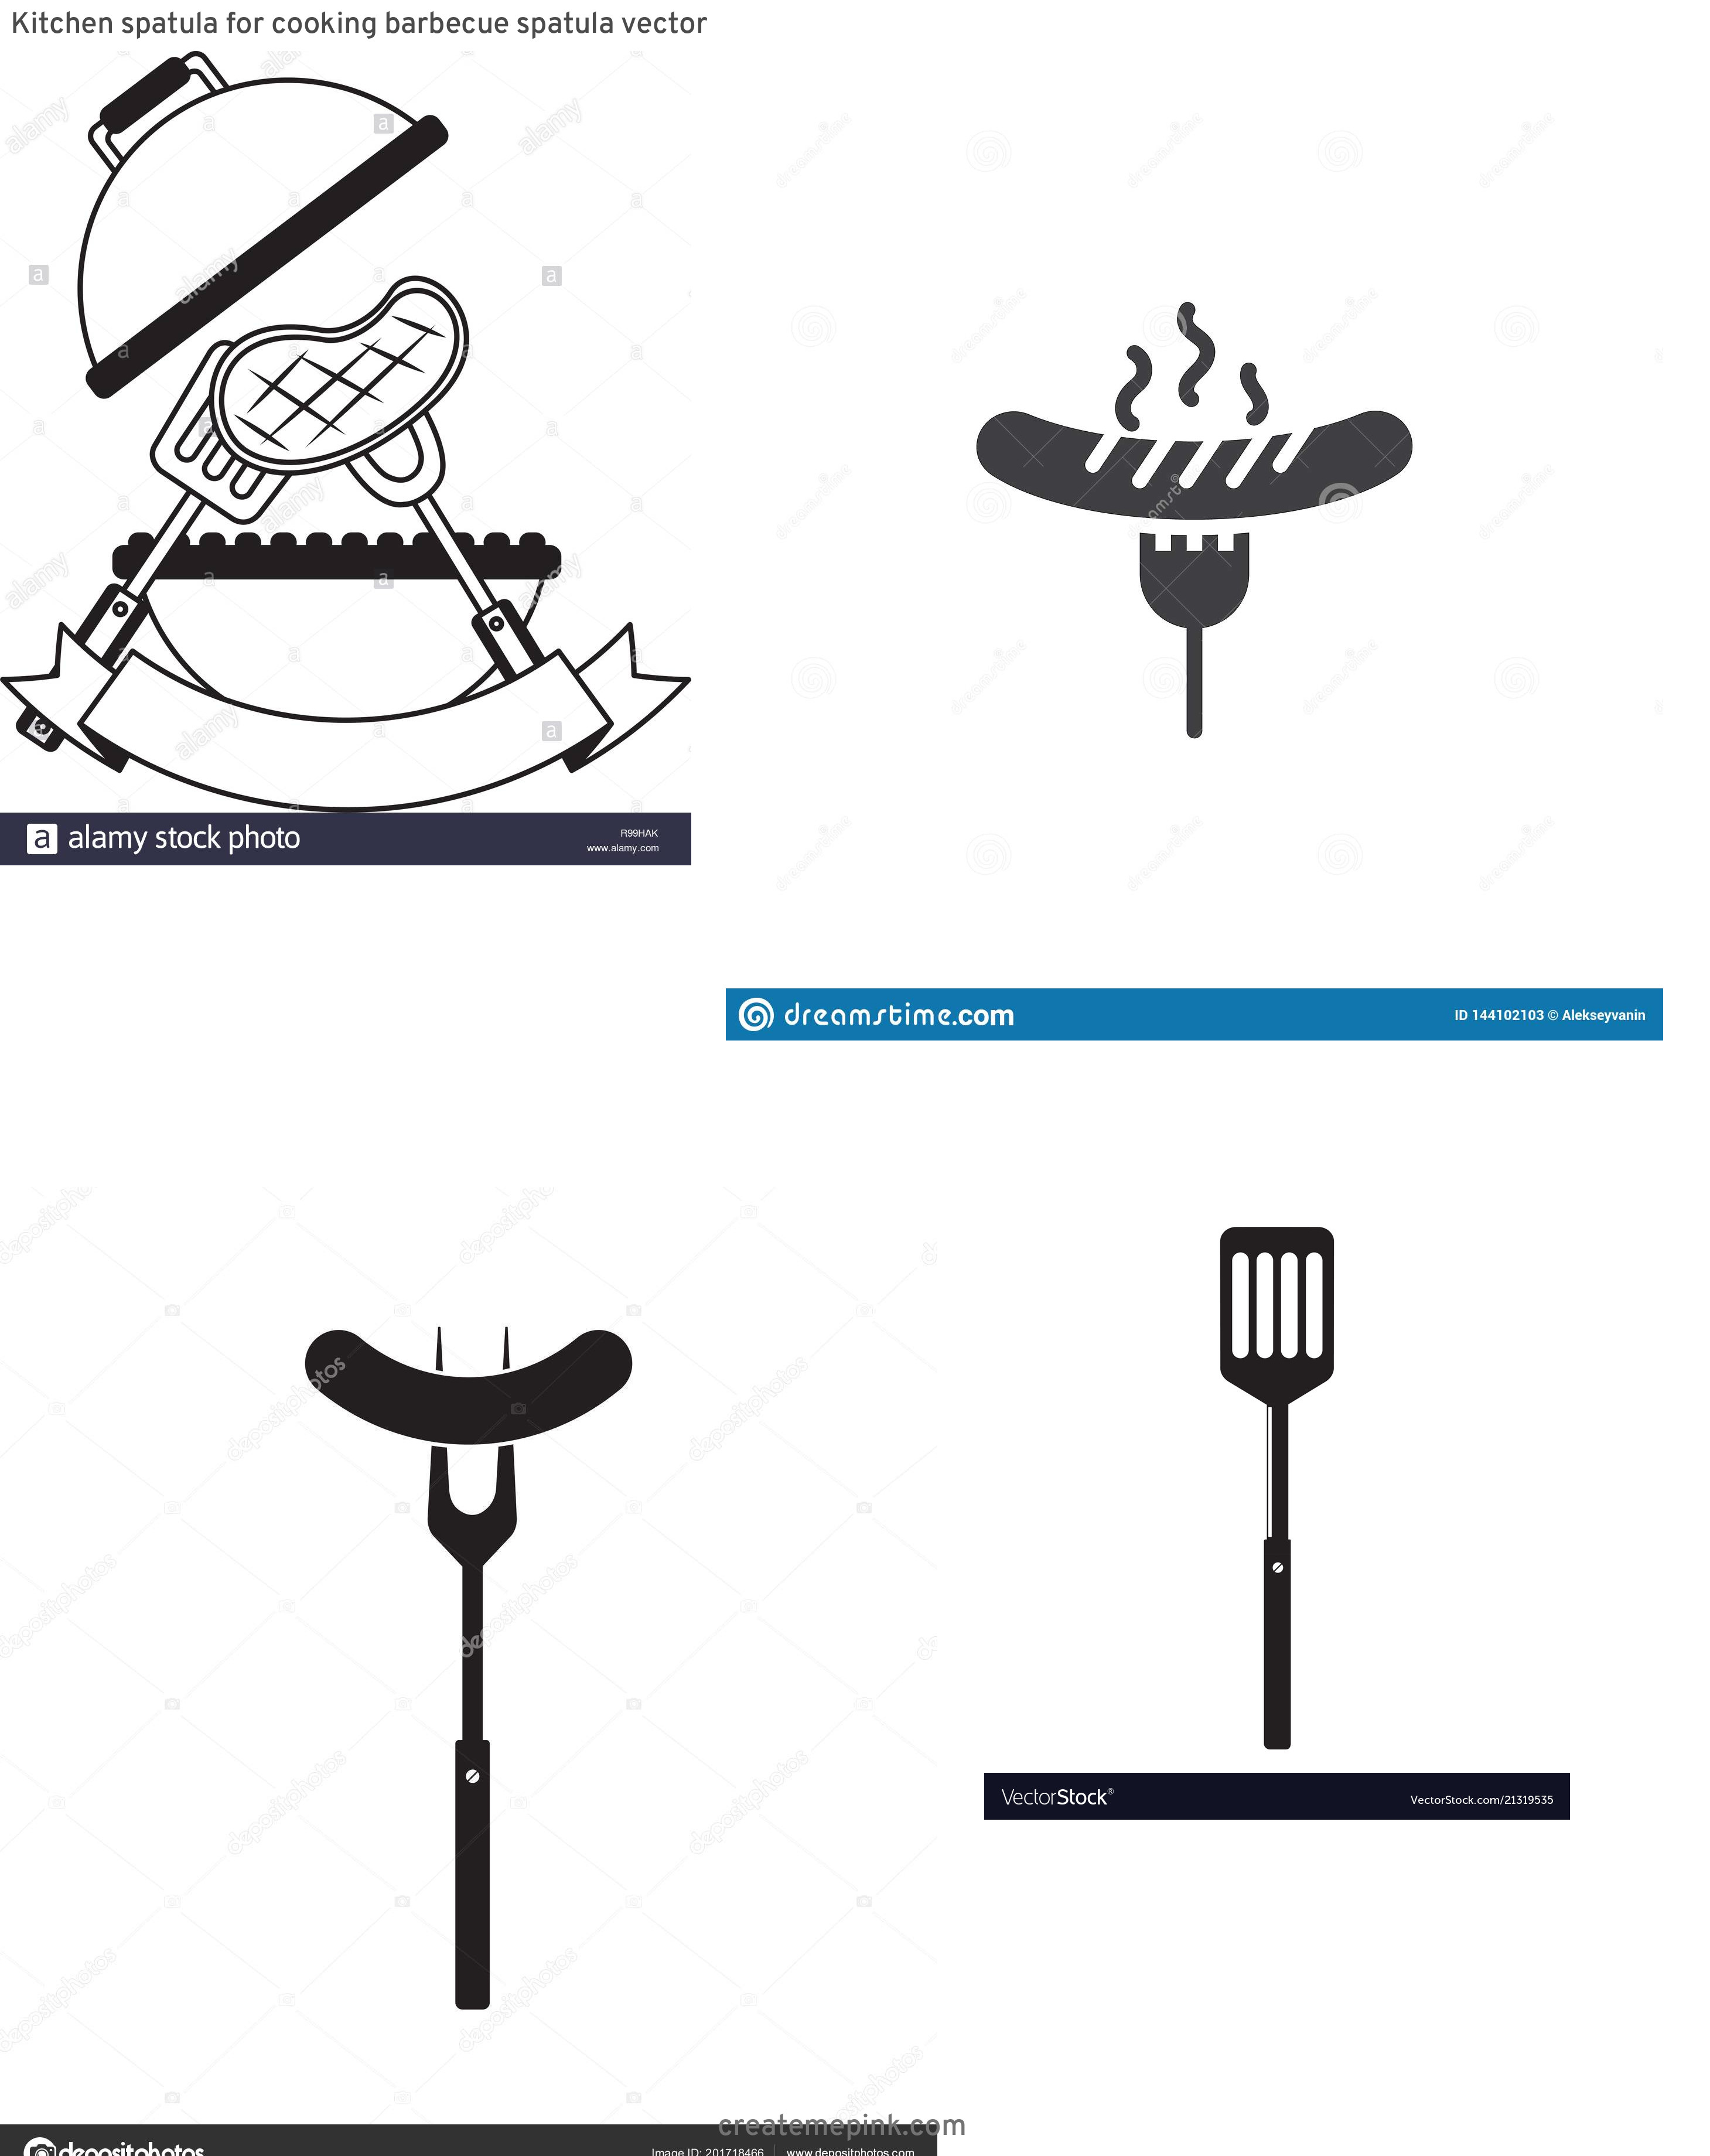 BBQ Fork Vector: Kitchen Spatula For Cooking Barbecue Spatula Vector